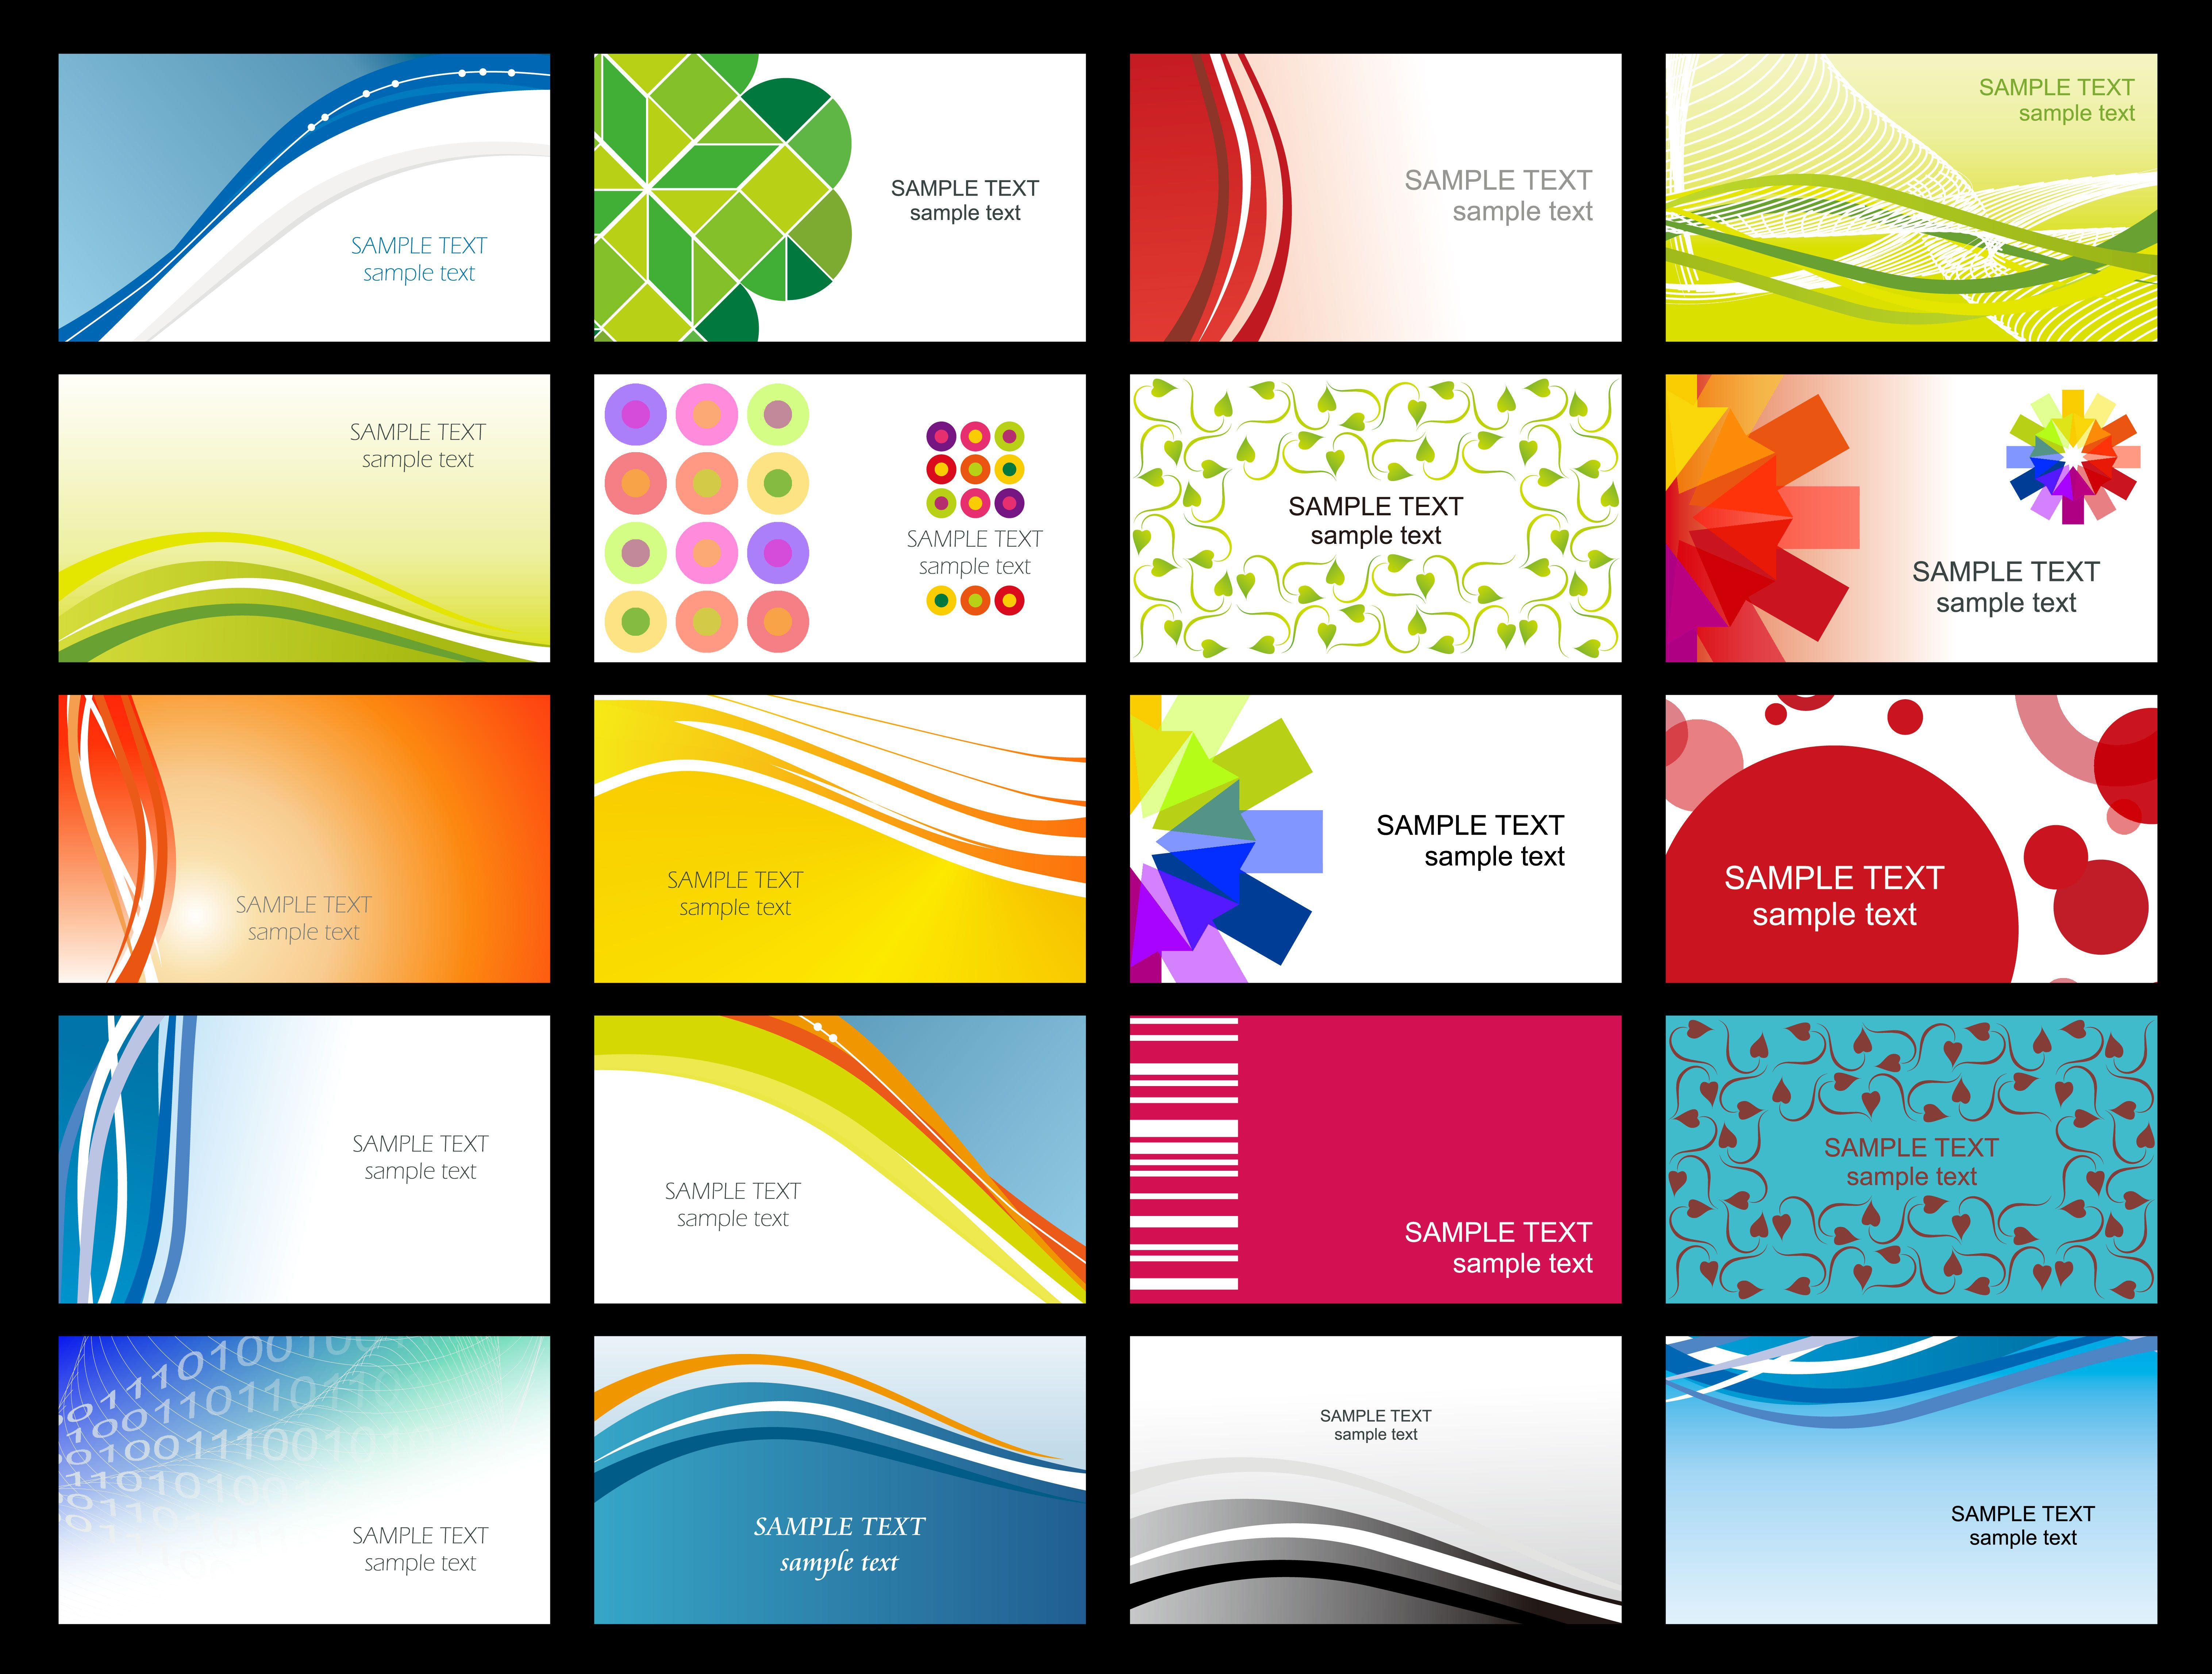 Free Vector Variety Of Dynamic Flow Line Of Business Card Templates - Free Printable Business Card Templates Pdf